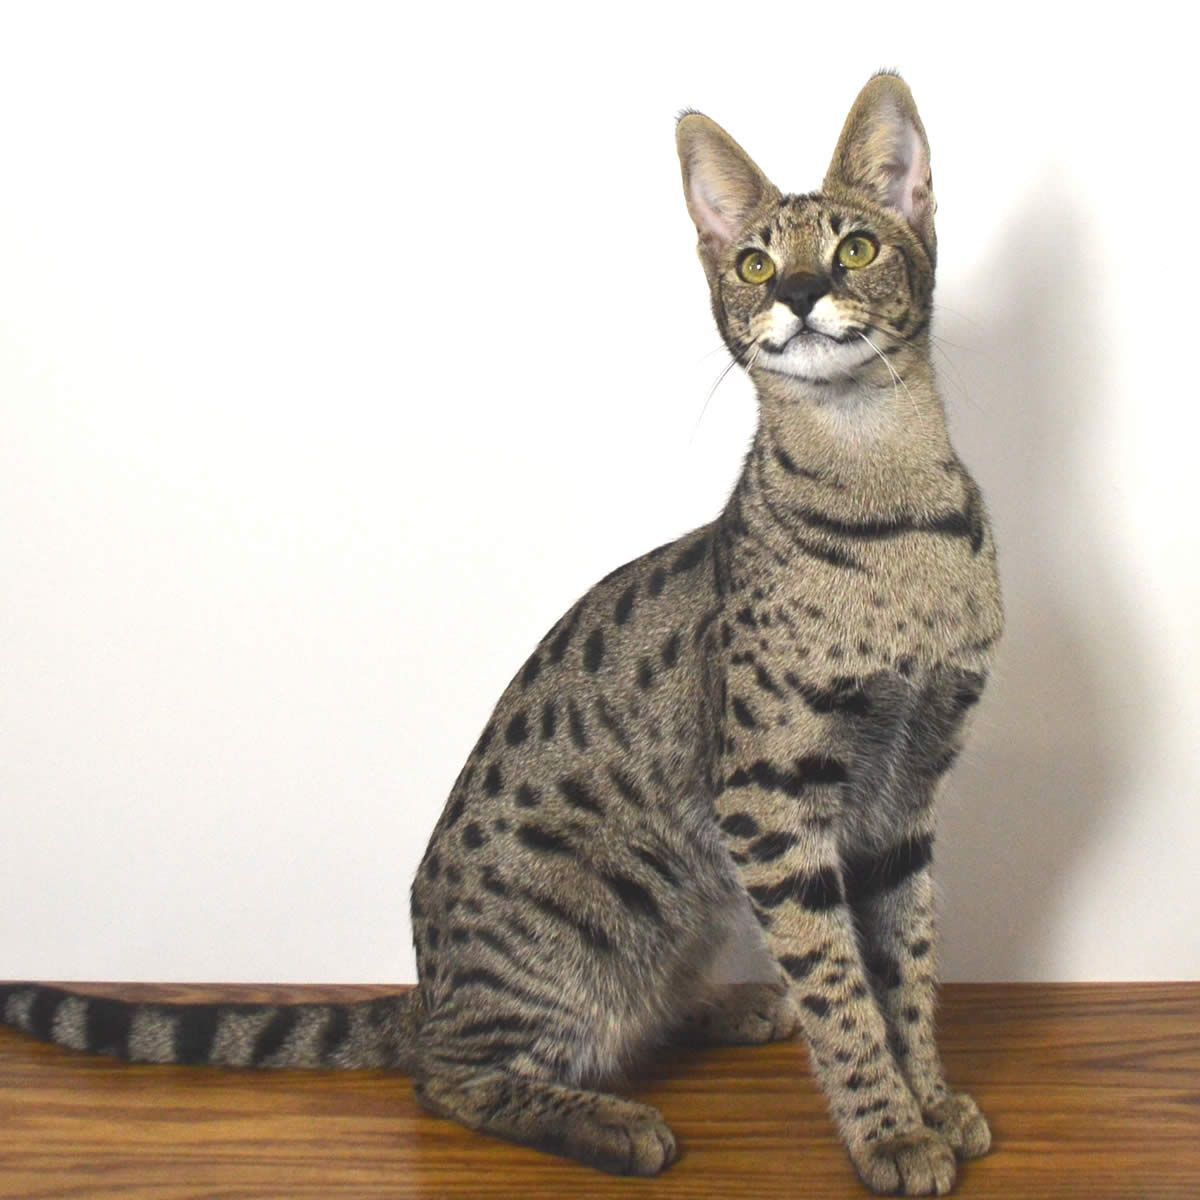 F1 Savannah Cat Savannah Cat Price Savannah Cat F5 Savannah Cat